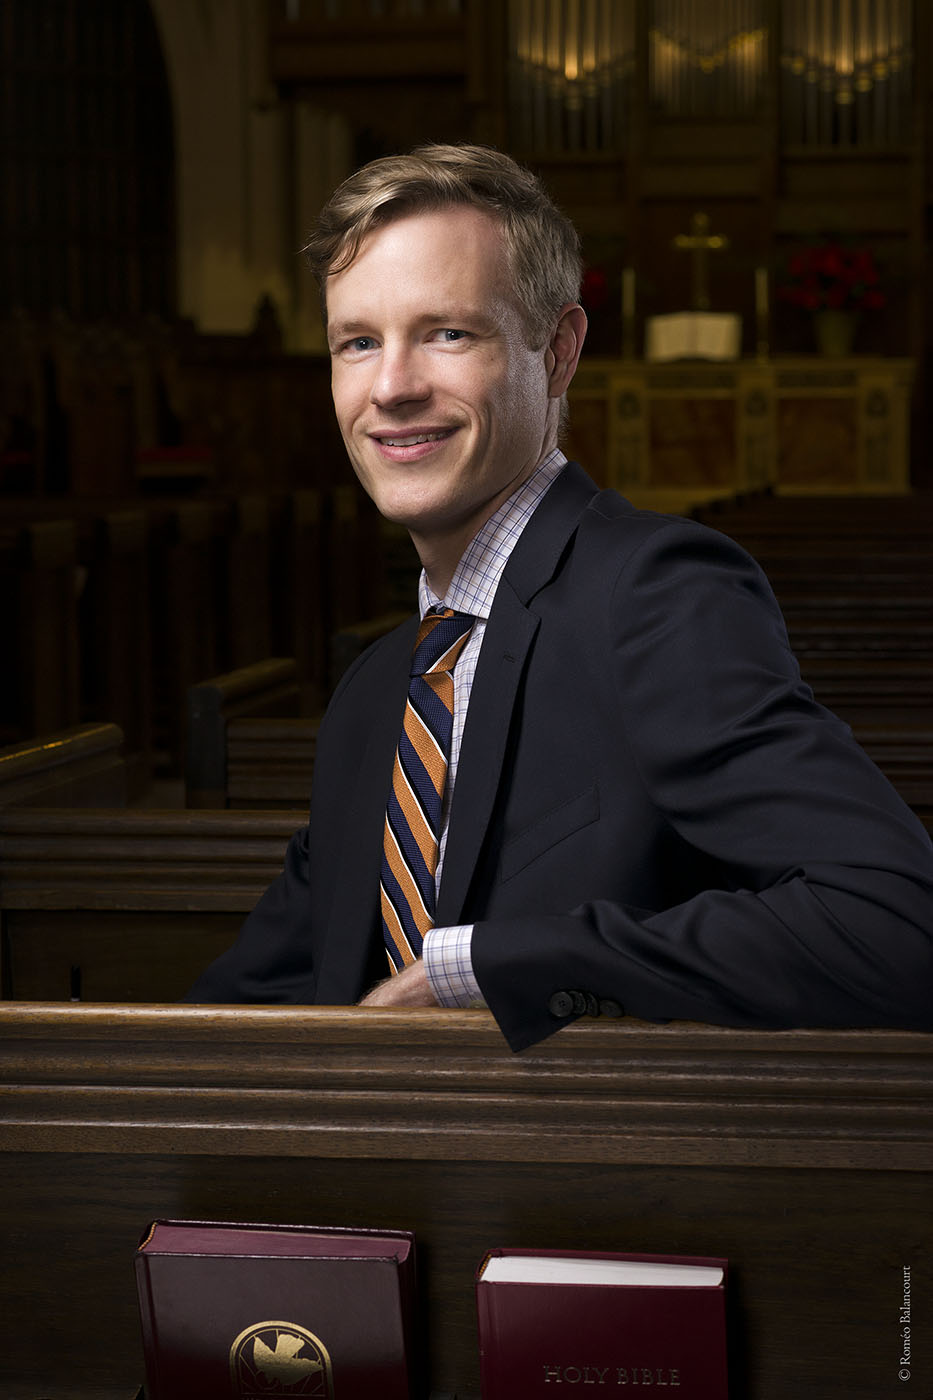 The Rev. Timothy Vance, Associate Pastor